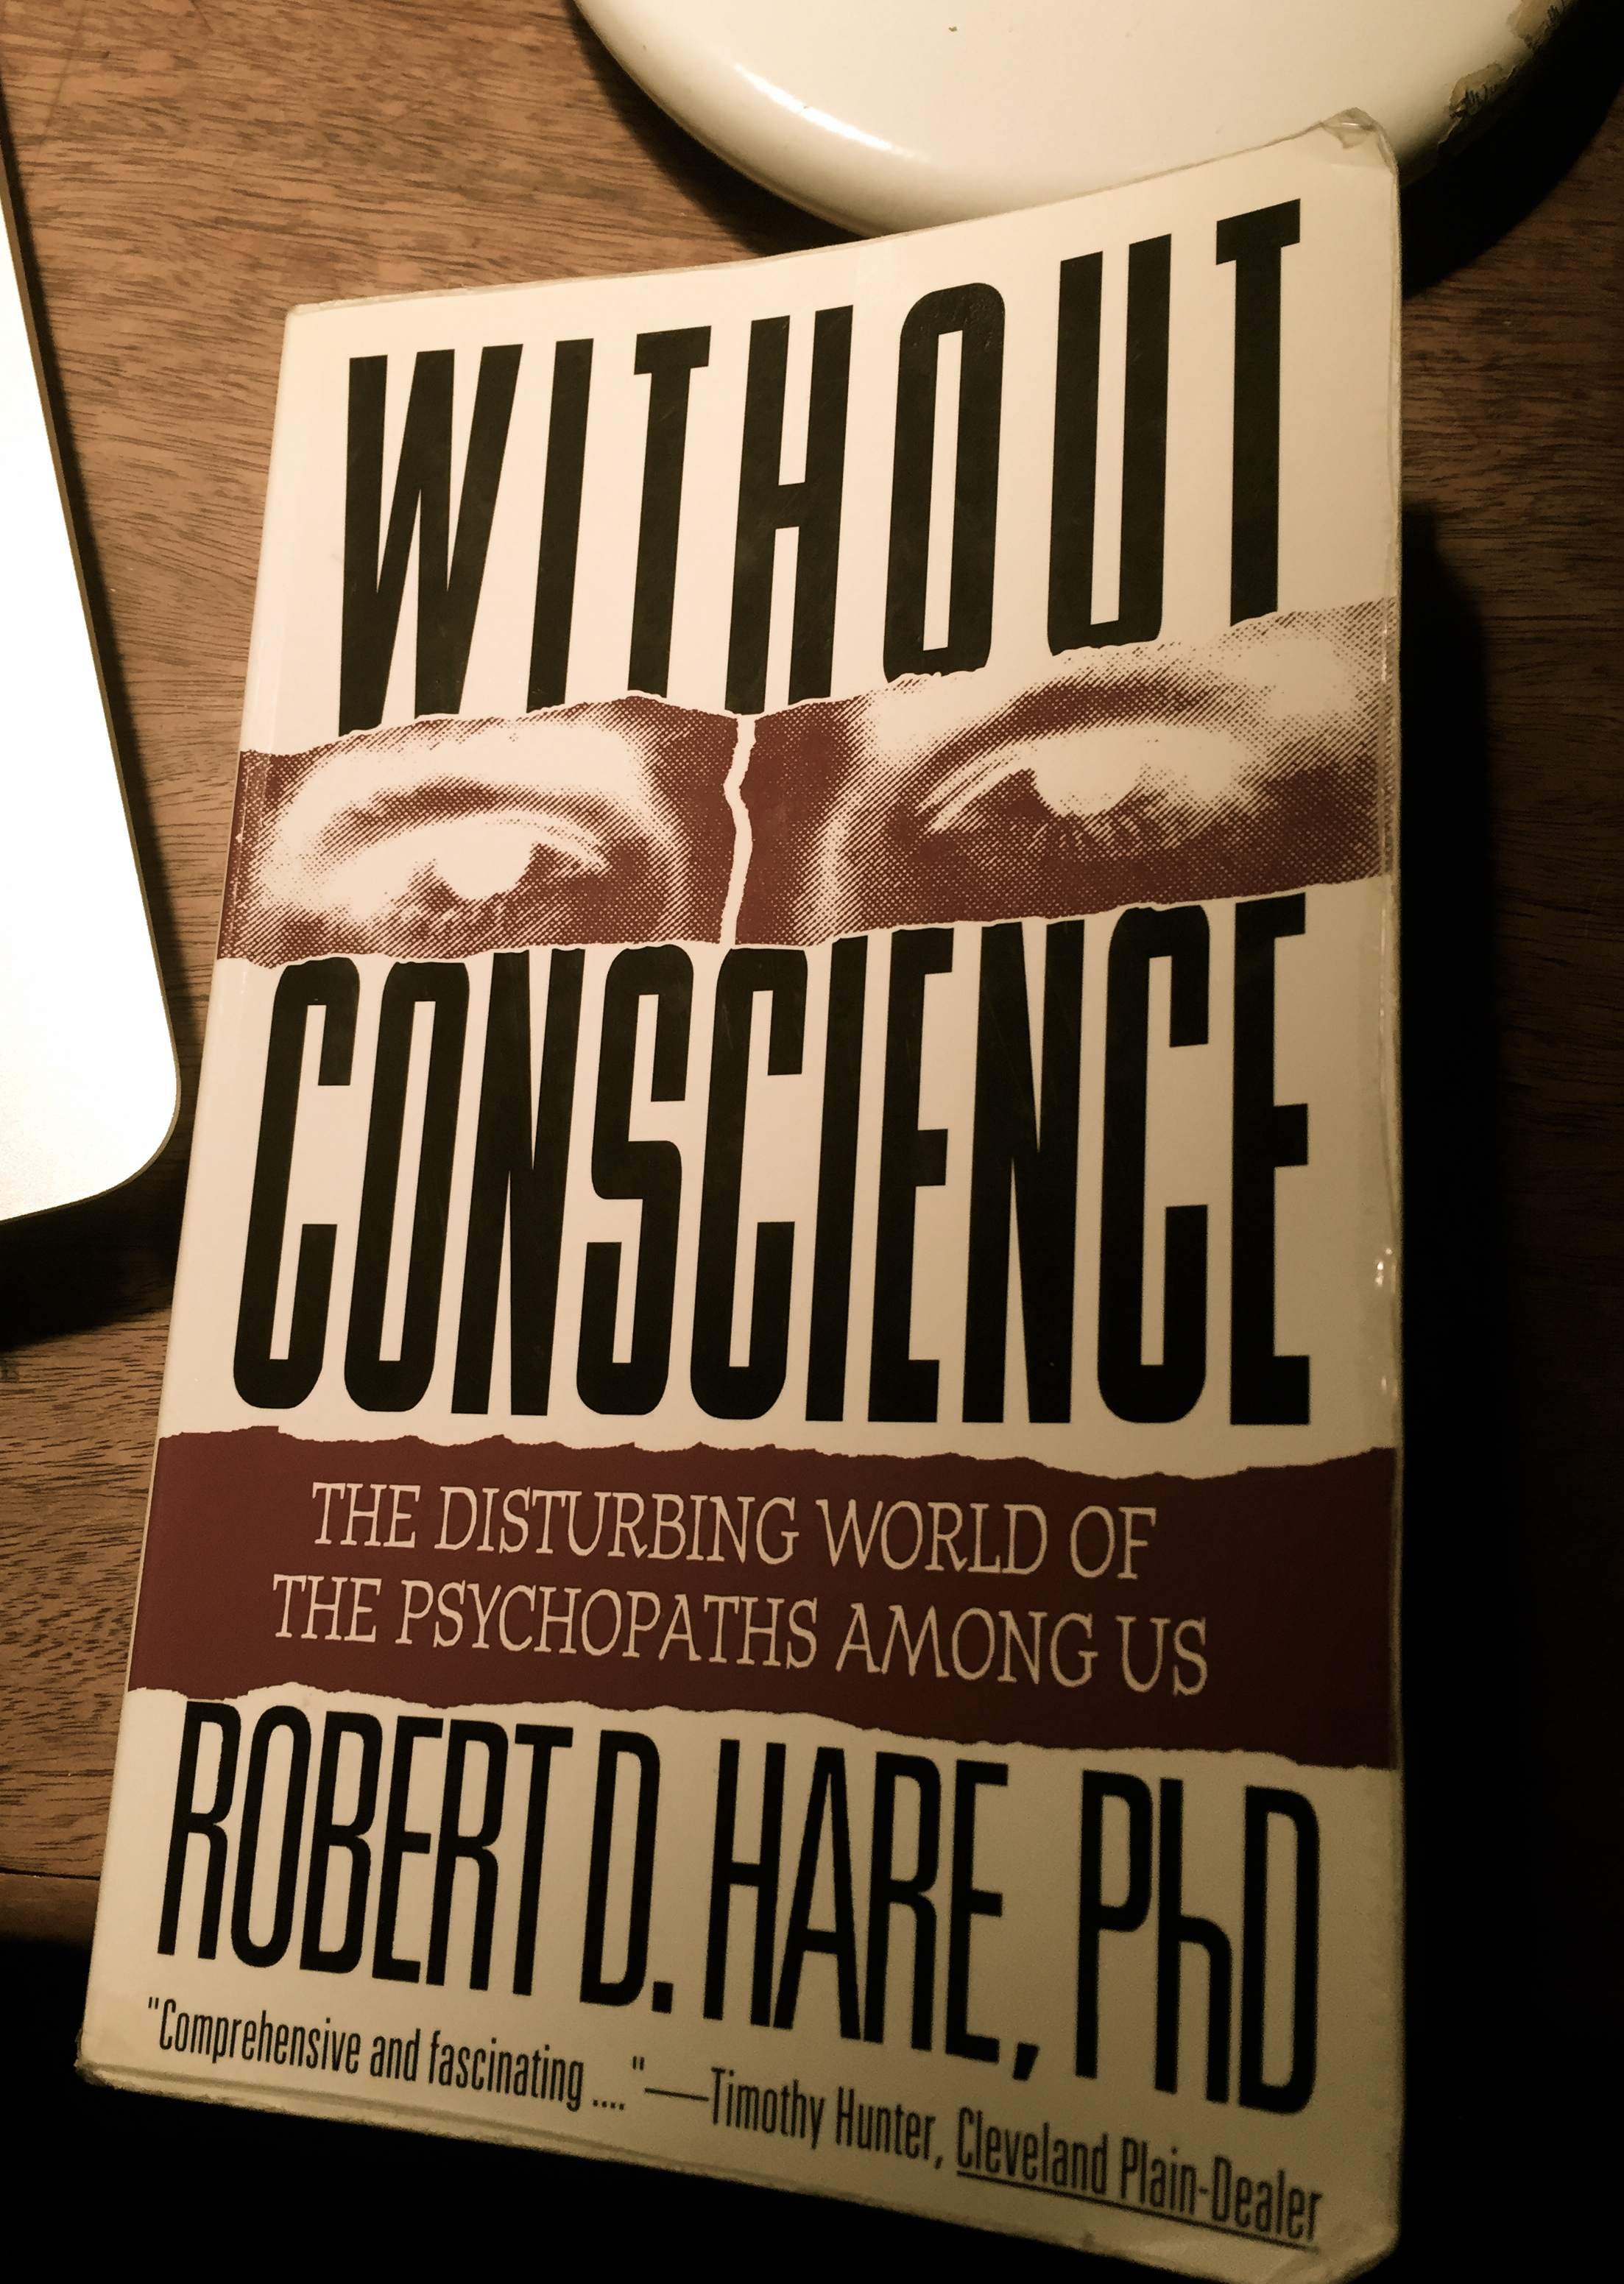 the disturbing world of the psychopaths essay Therefore, the book without conscience: the disturbing world of the psychopaths among us by robert hare is a well-developed work on psychopathic personality the author analyzes the reasons and consequences of psychopathic behavior stressing that it is the most dangerous personality disorder as such people when affected don't.